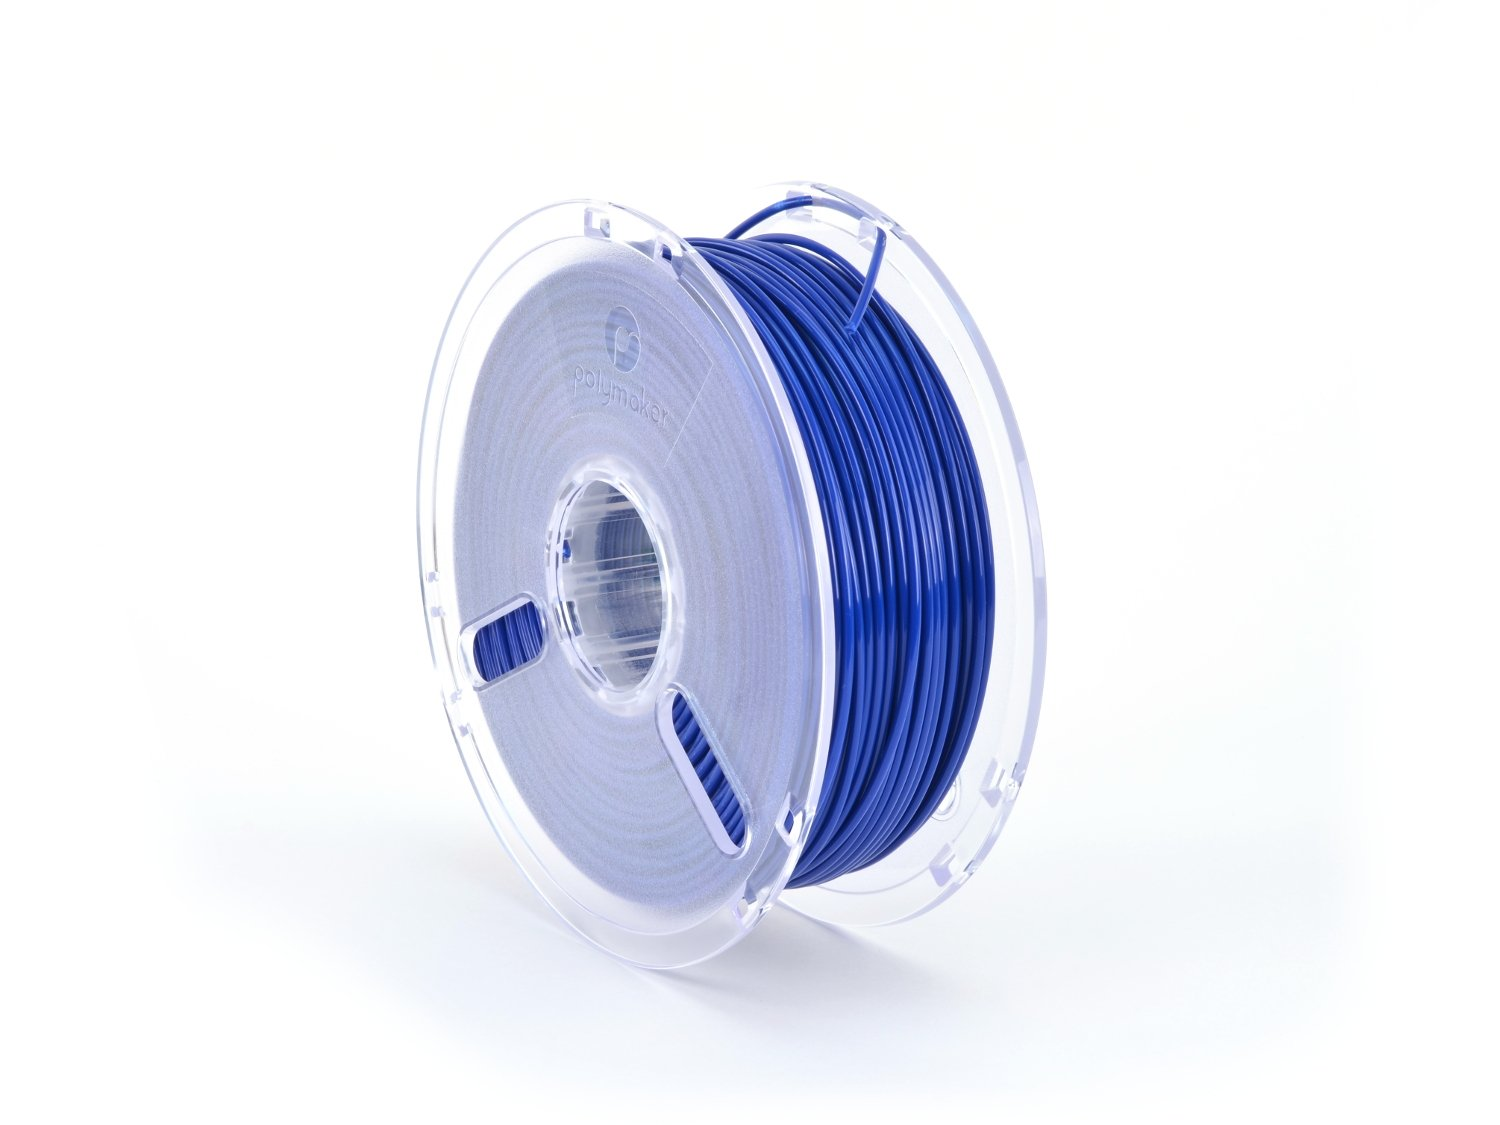 LulzBot PolyLite PLA Polymaker Filament, 2.85 mm, 1 kg Reel, True Blue